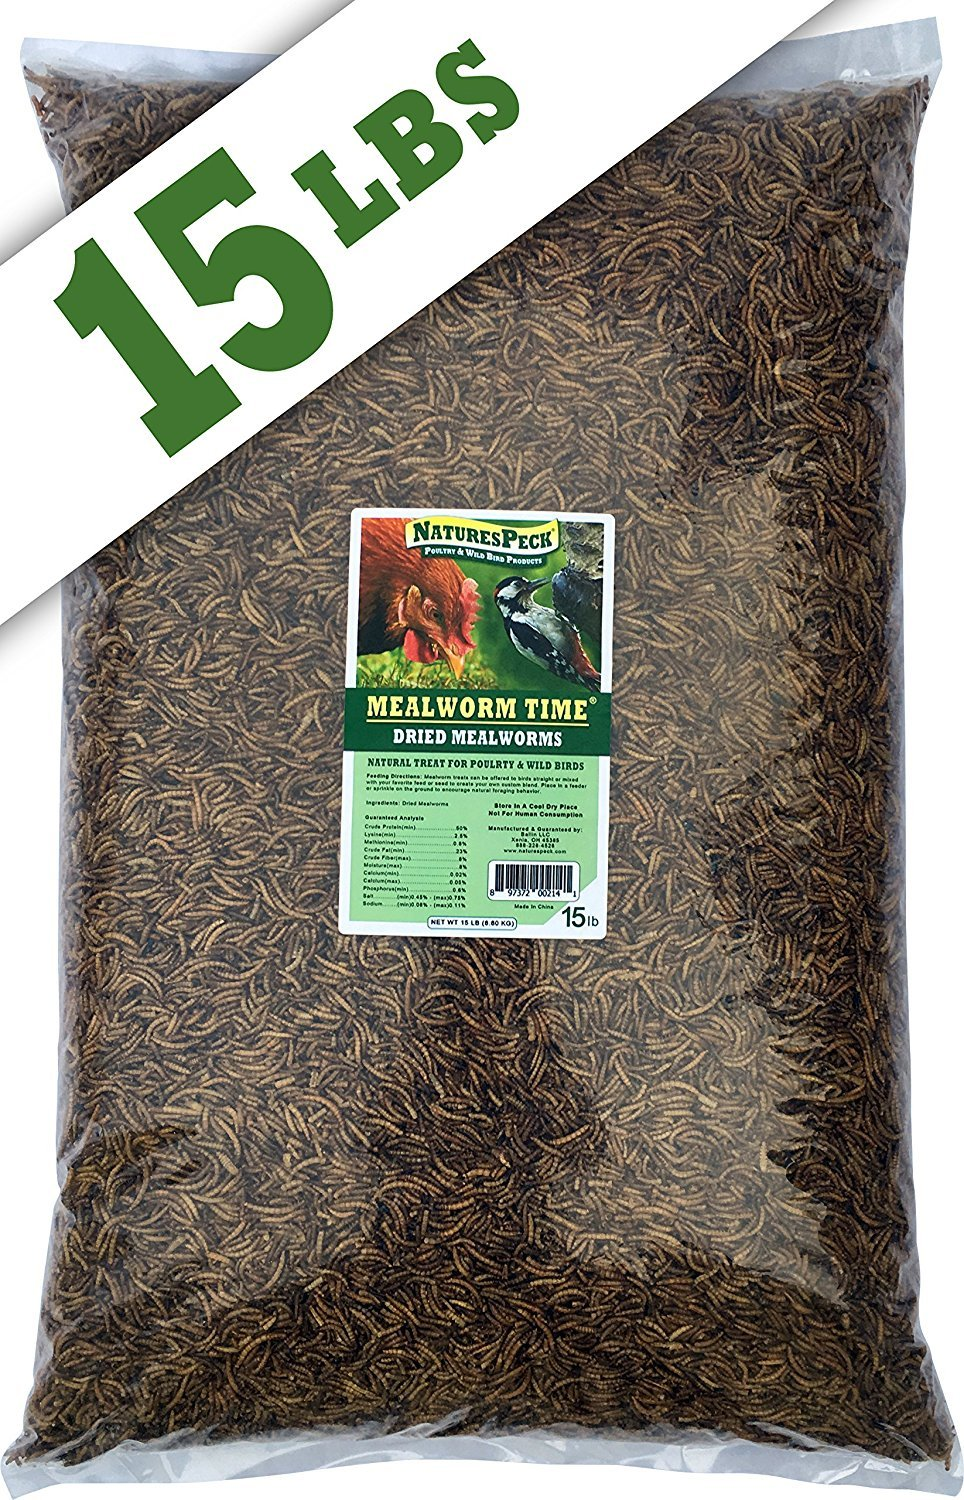 NaturesPeck Mealworm Time Dried Mealworms (15 lbs) Non-GMO